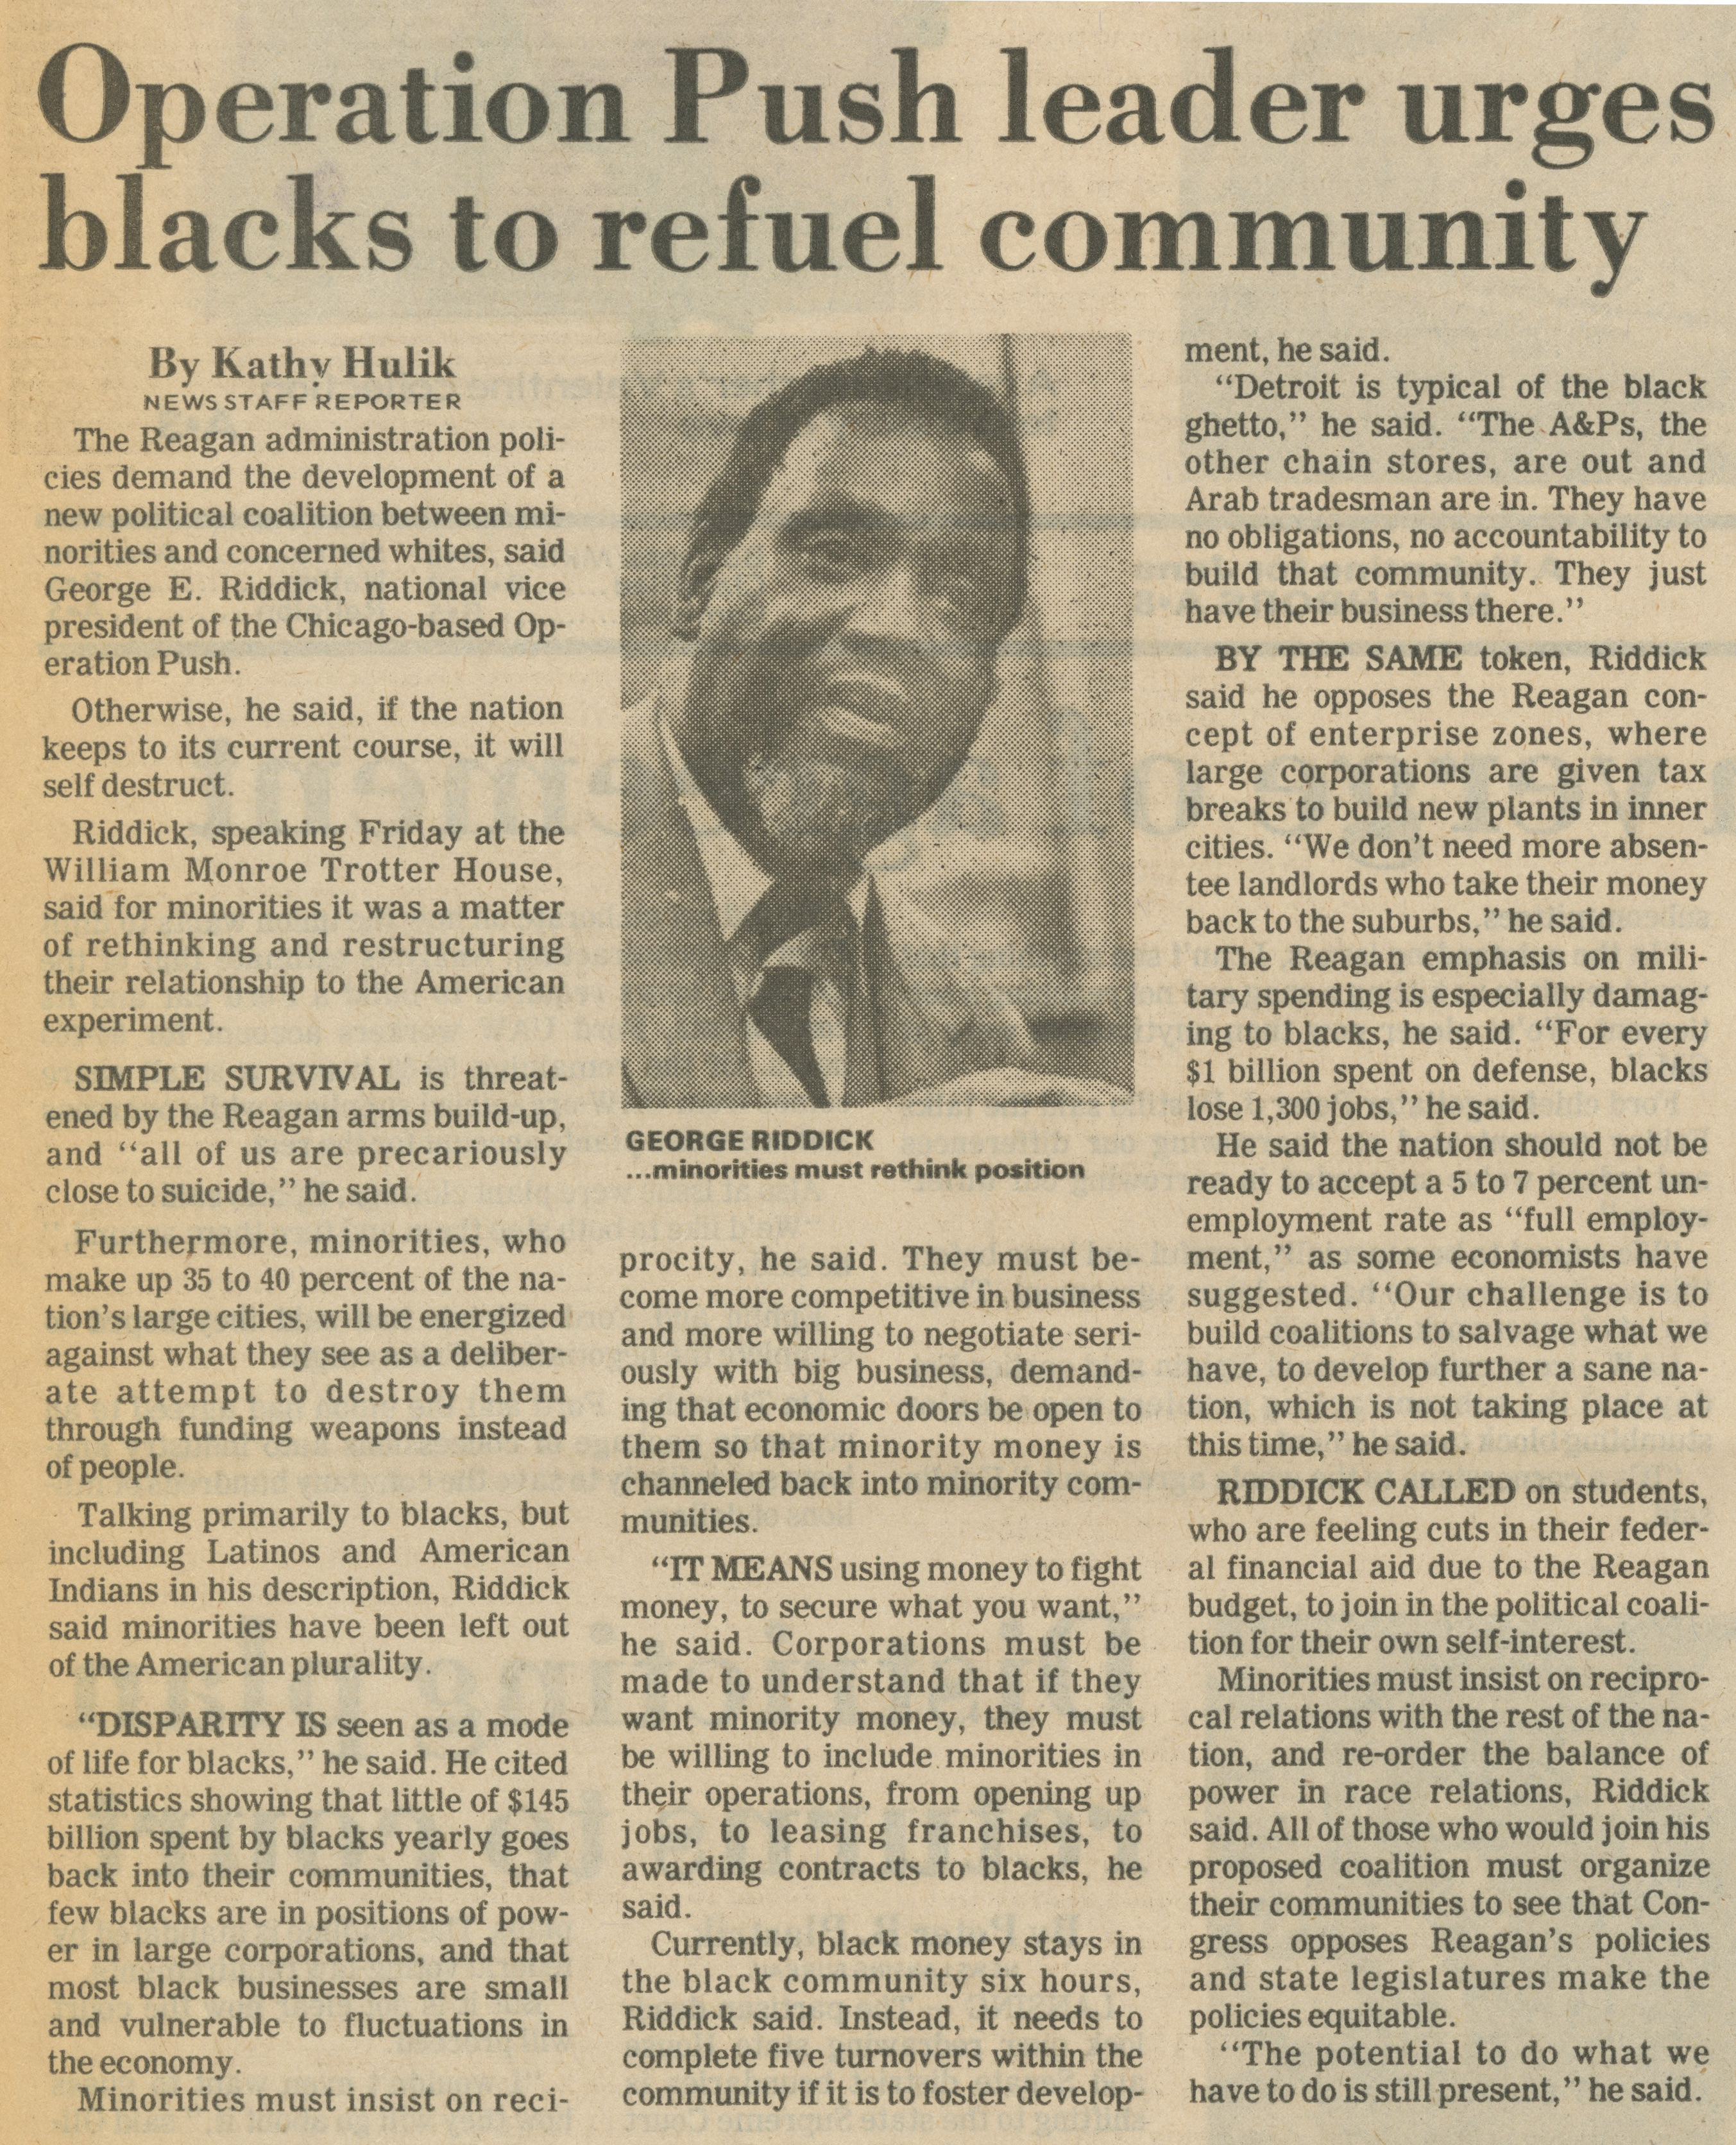 Operation Push Leader Urges Blacks To Refuel Community image